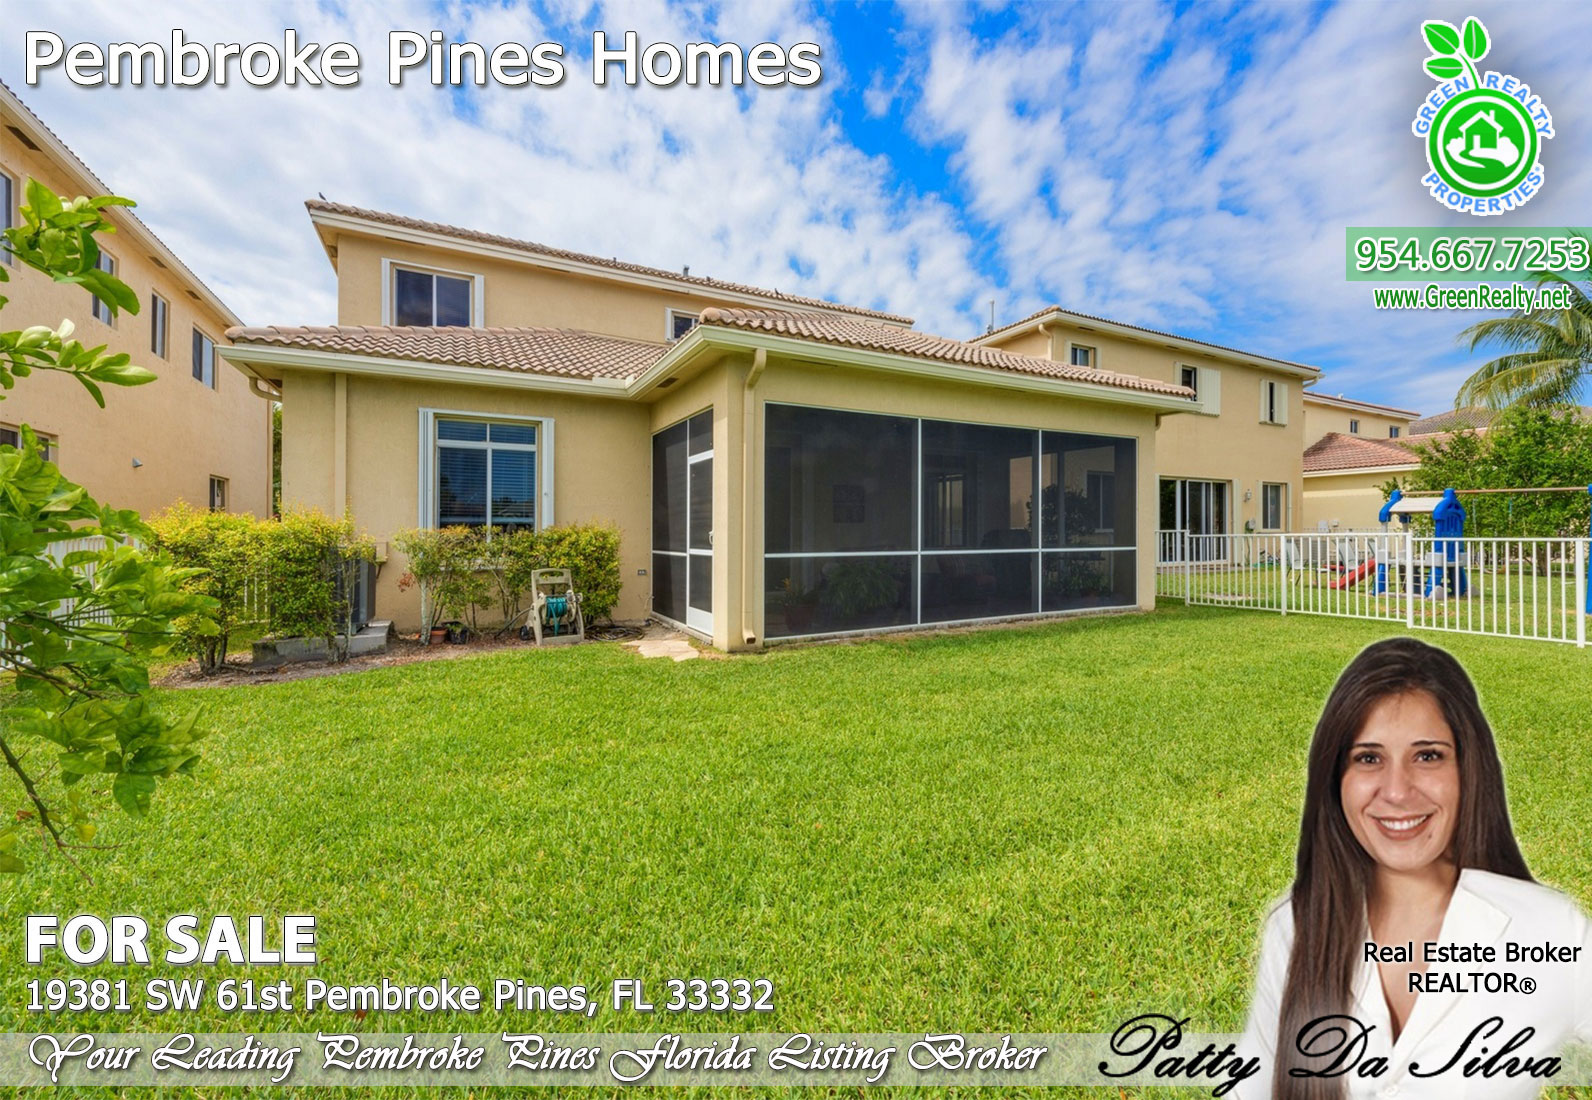 pembroke-pines-real-estate-broker-patty-da-silva